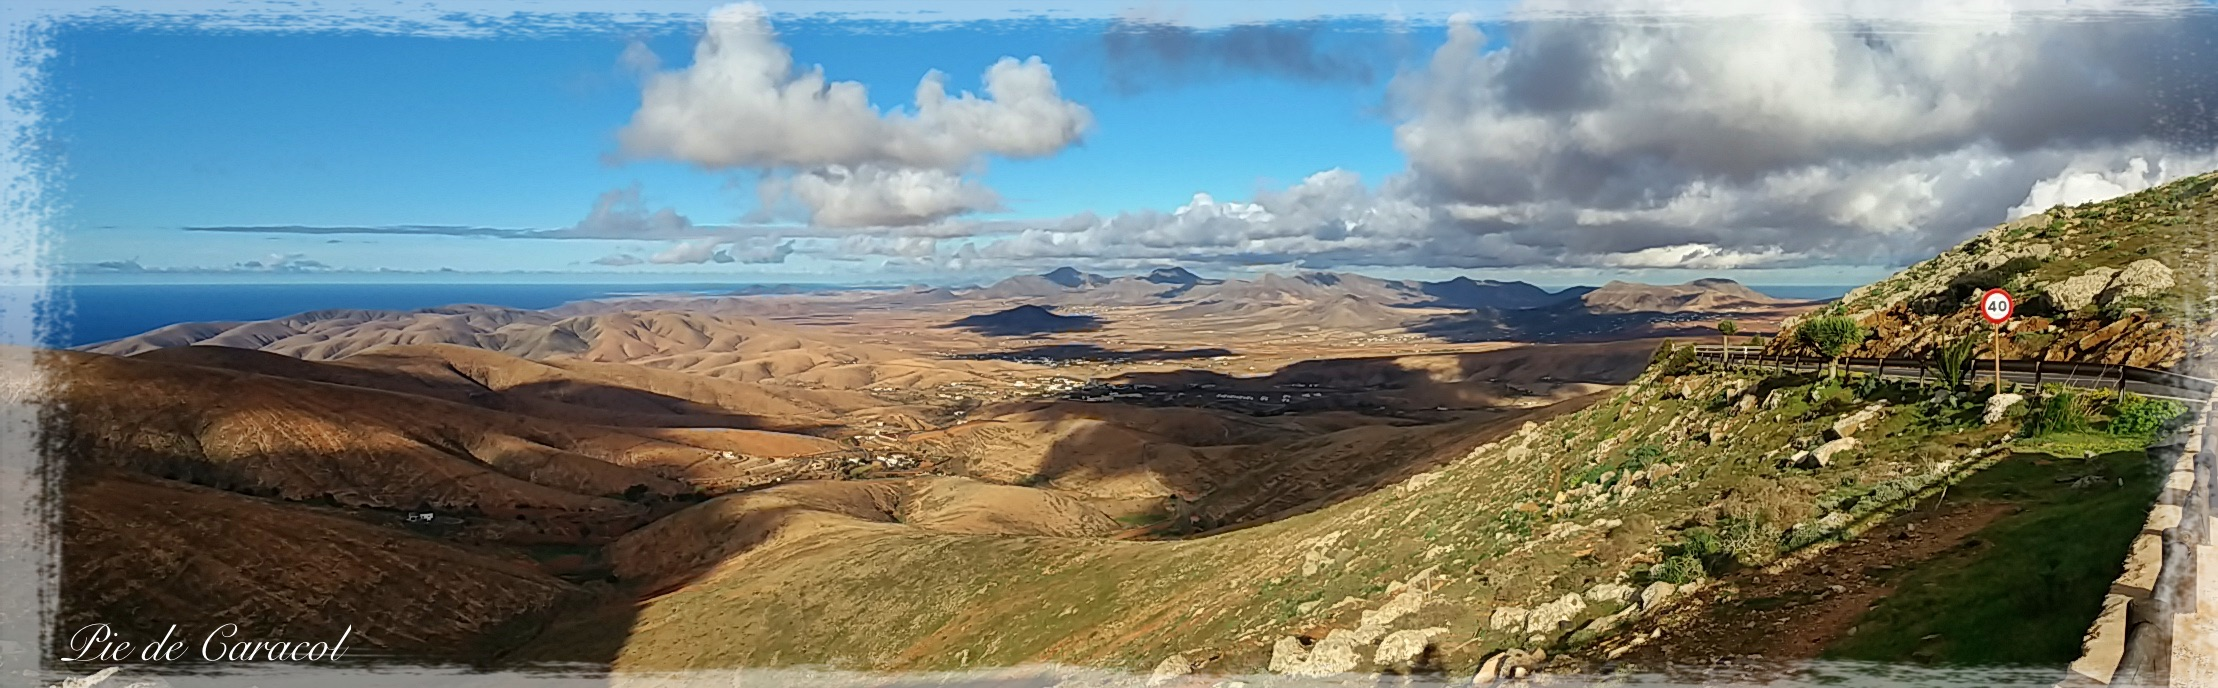 Panoramic Tour, Fuerteventura, Canary Islands